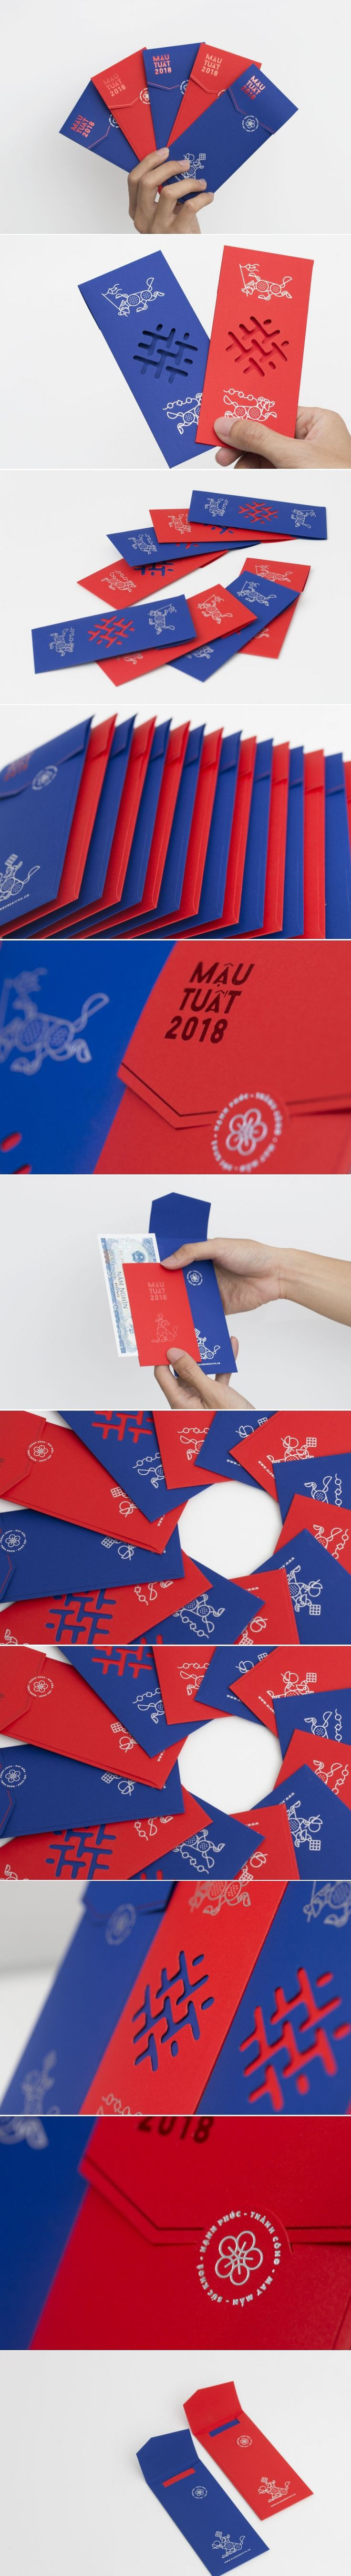 Check Out This Unique Take On The Lucky Red Envelope for The New Year — The Dieline | Packaging & Branding Design & Innovation News